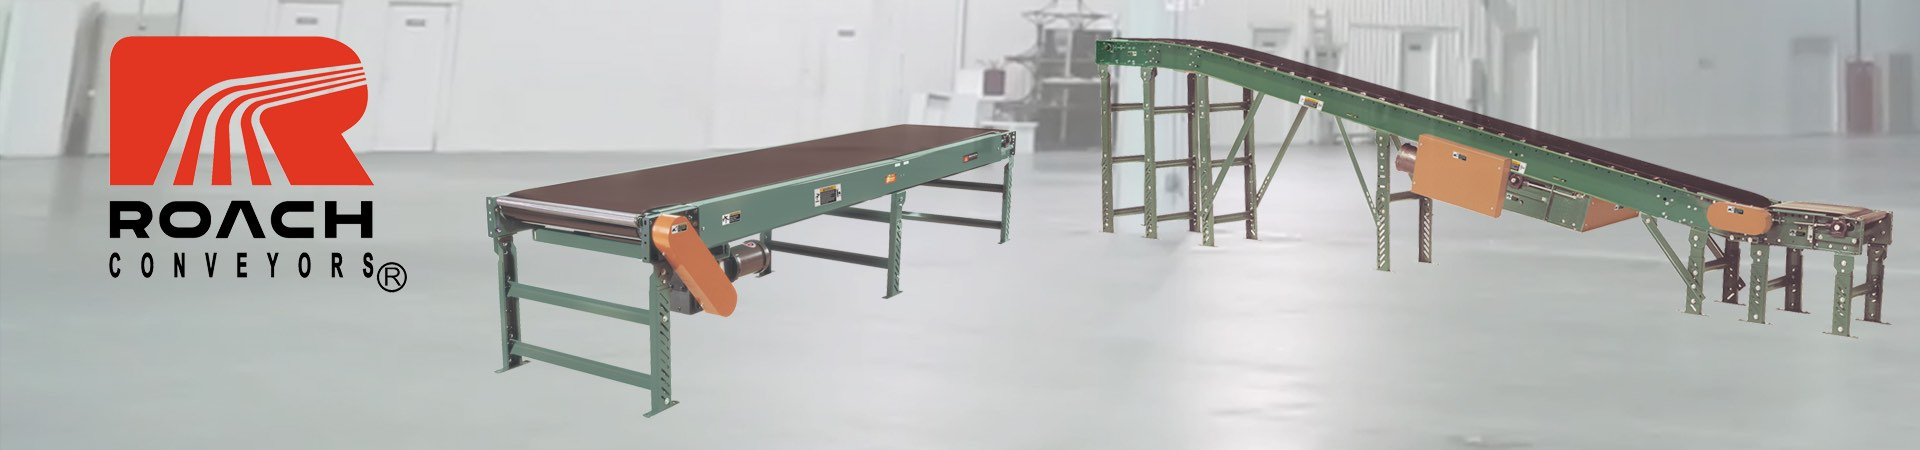 PARTNERED WITH ROACH CONVEYORS